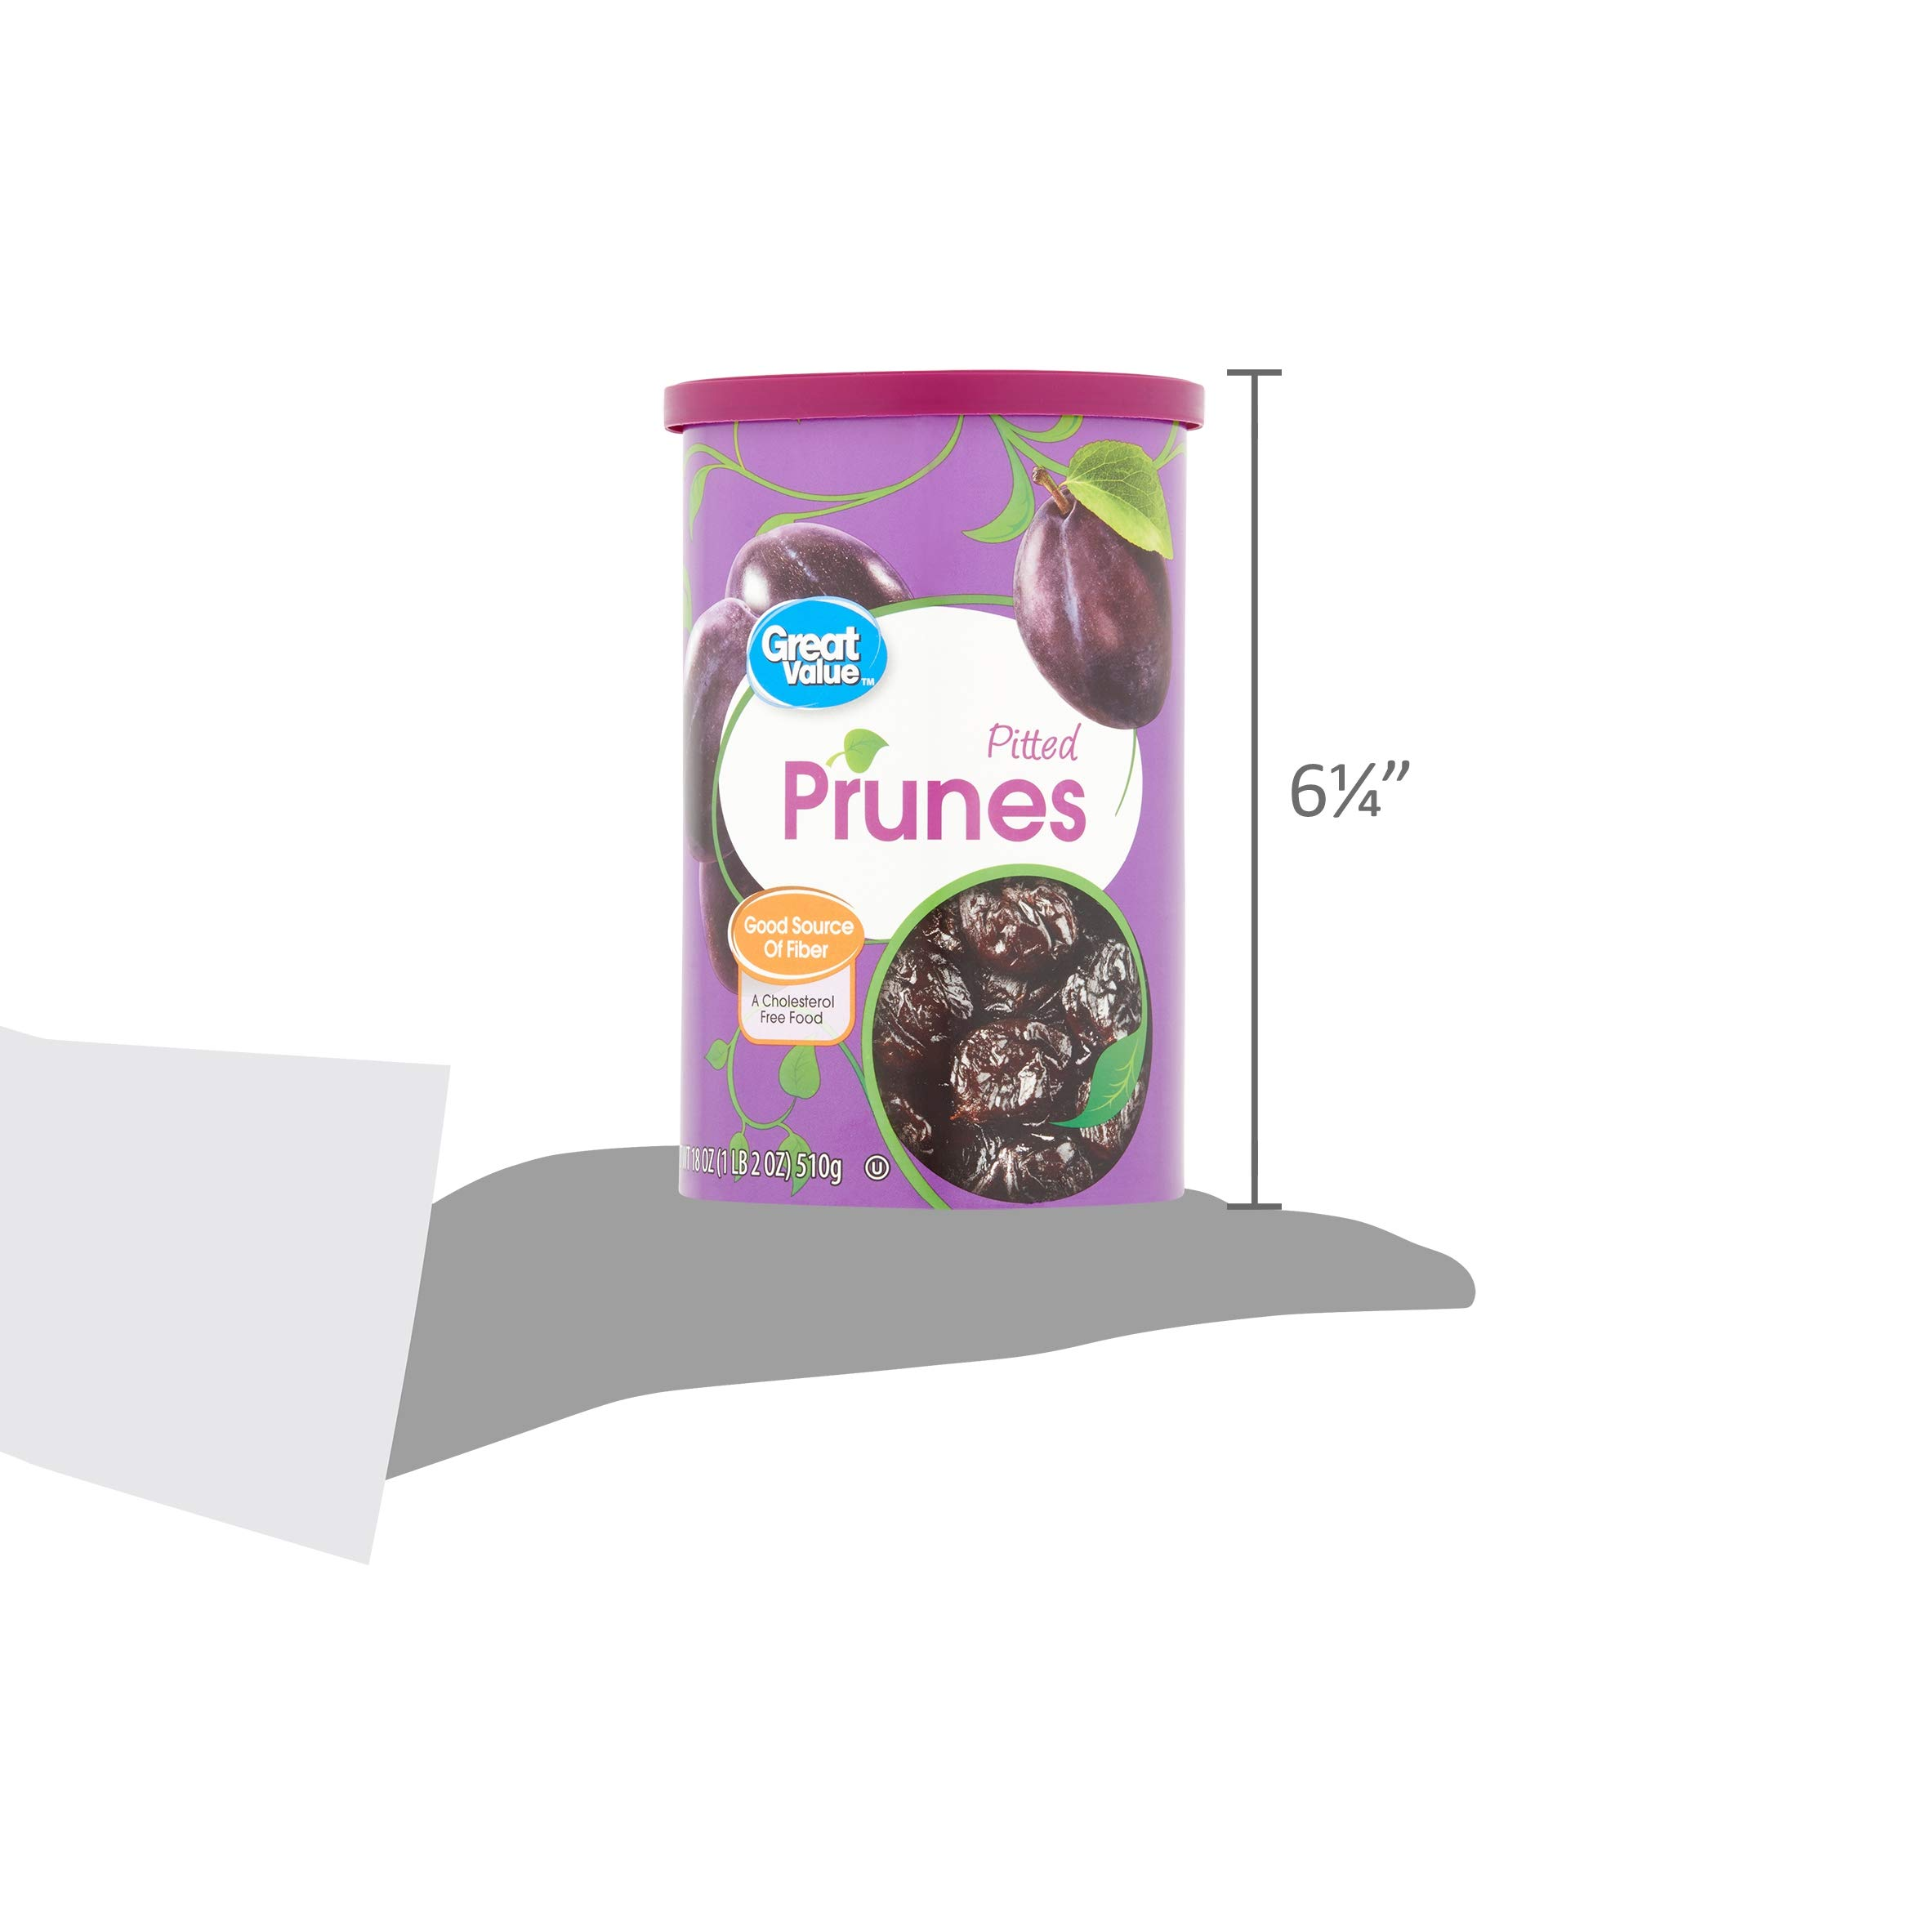 18 Oz Great Value Pitted Dried Prunes (Pack of 2)